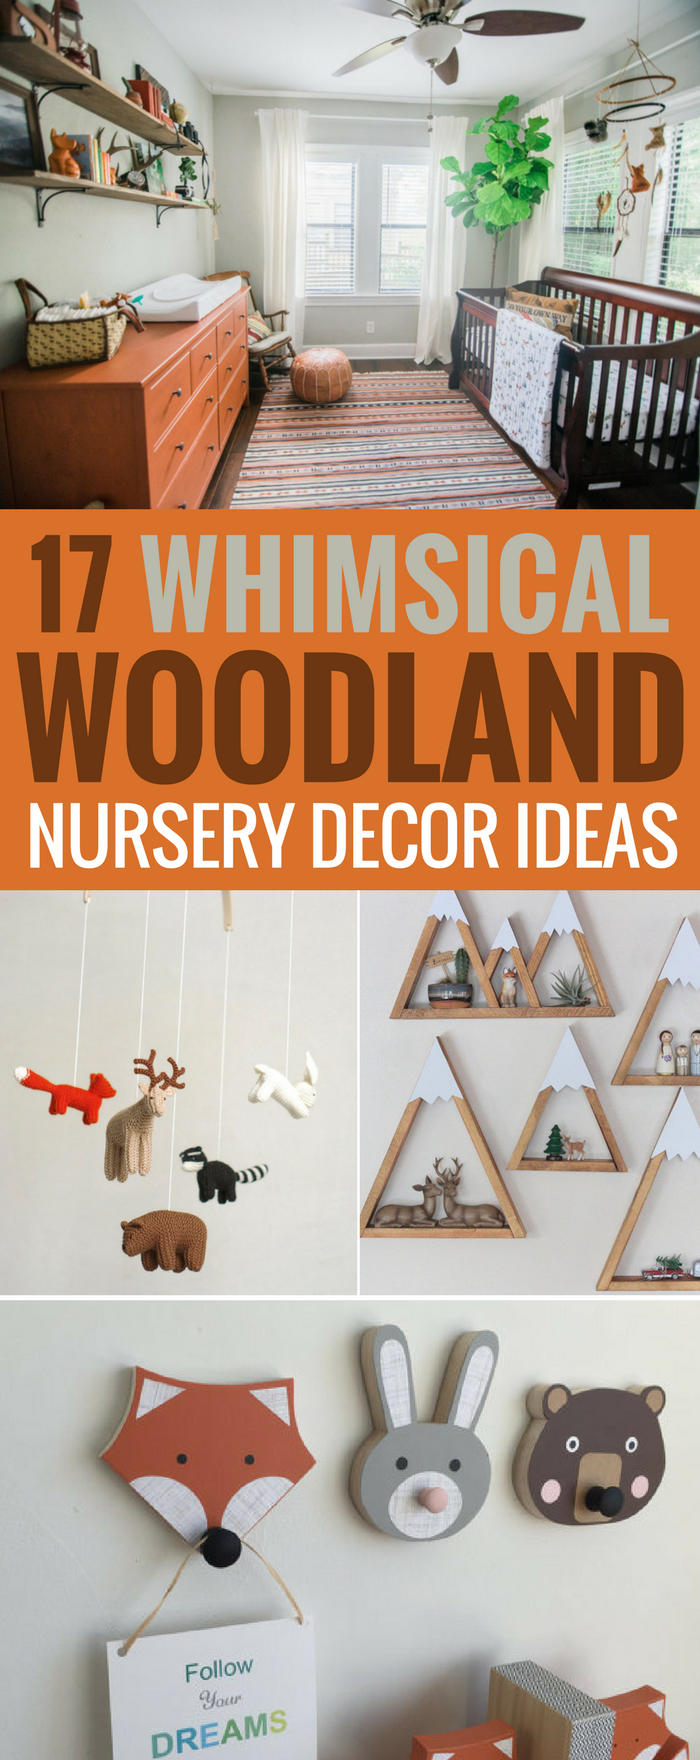 Decor Ideas For A Whimsical Woodland Nursery Rustic That Are Gender Neutral And Feature